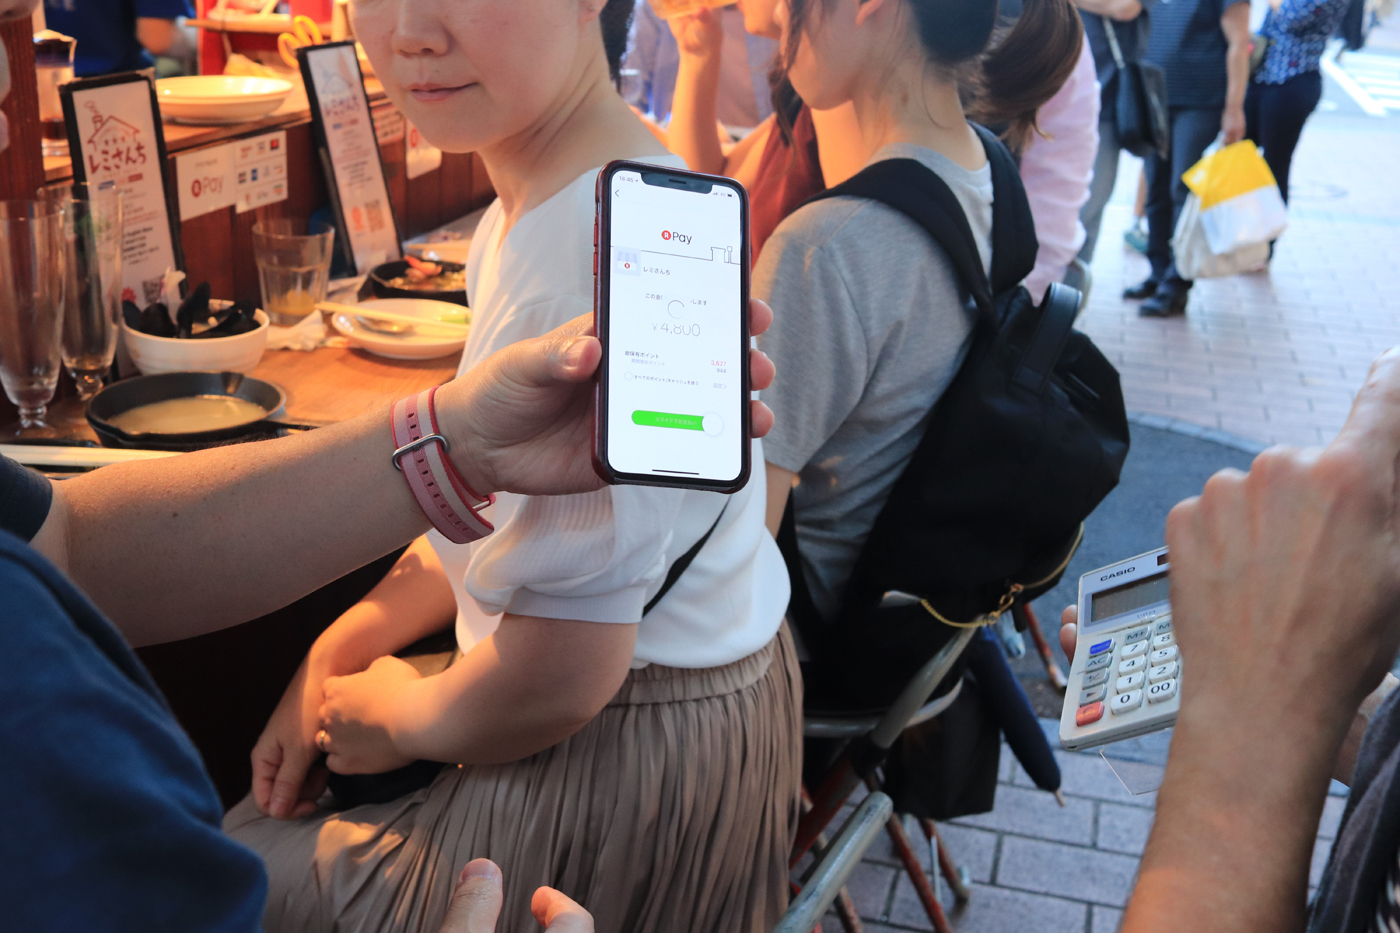 A major experimental project on cashless payments has been underway at Fukuoka's yatai food stalls, which accept such payments.